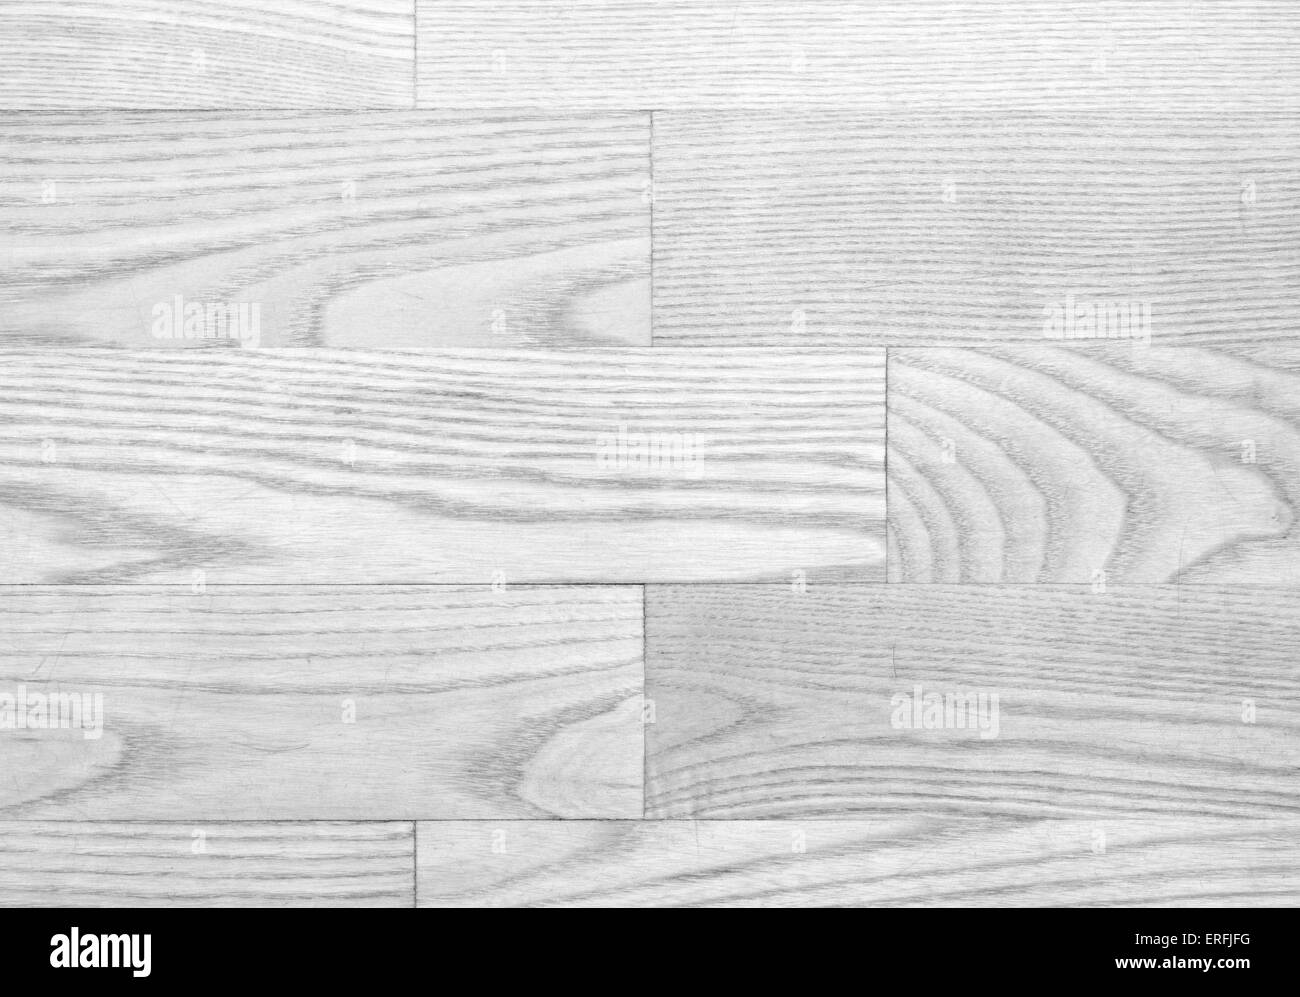 Gray parqueted floor, wooden texture with horizontal planks - Stock Image